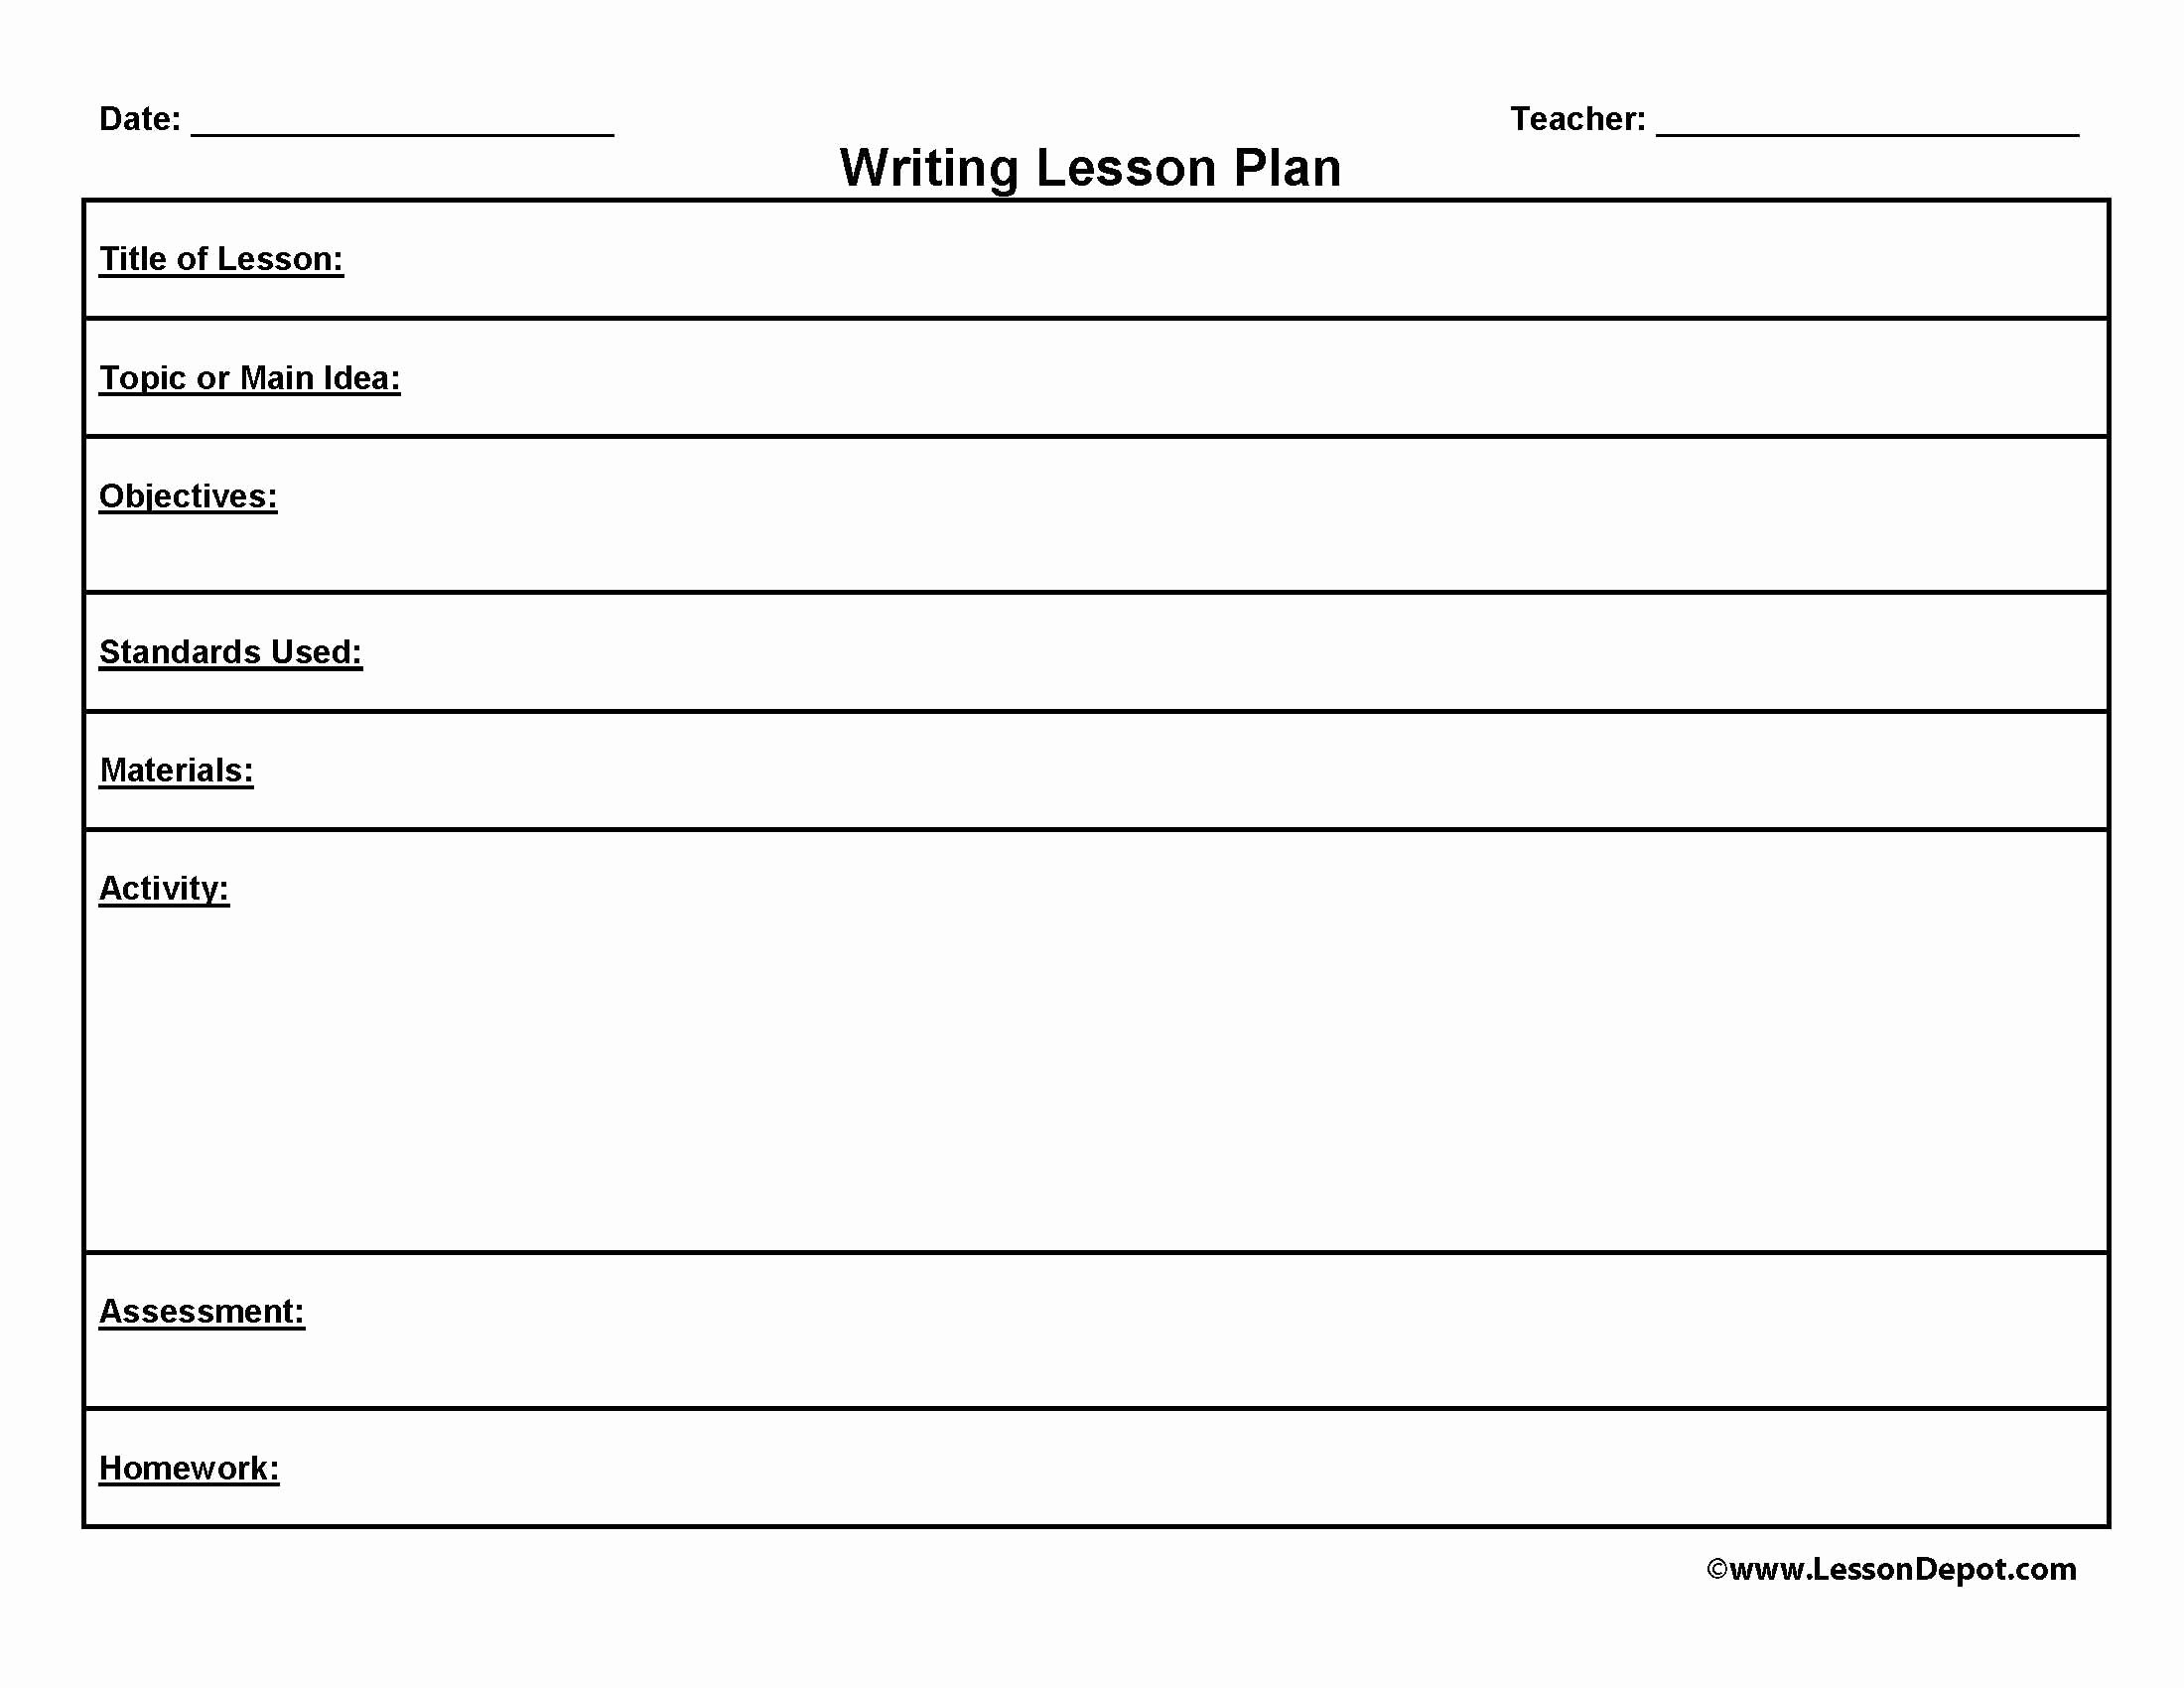 Lesson Plan Template Free New Writing